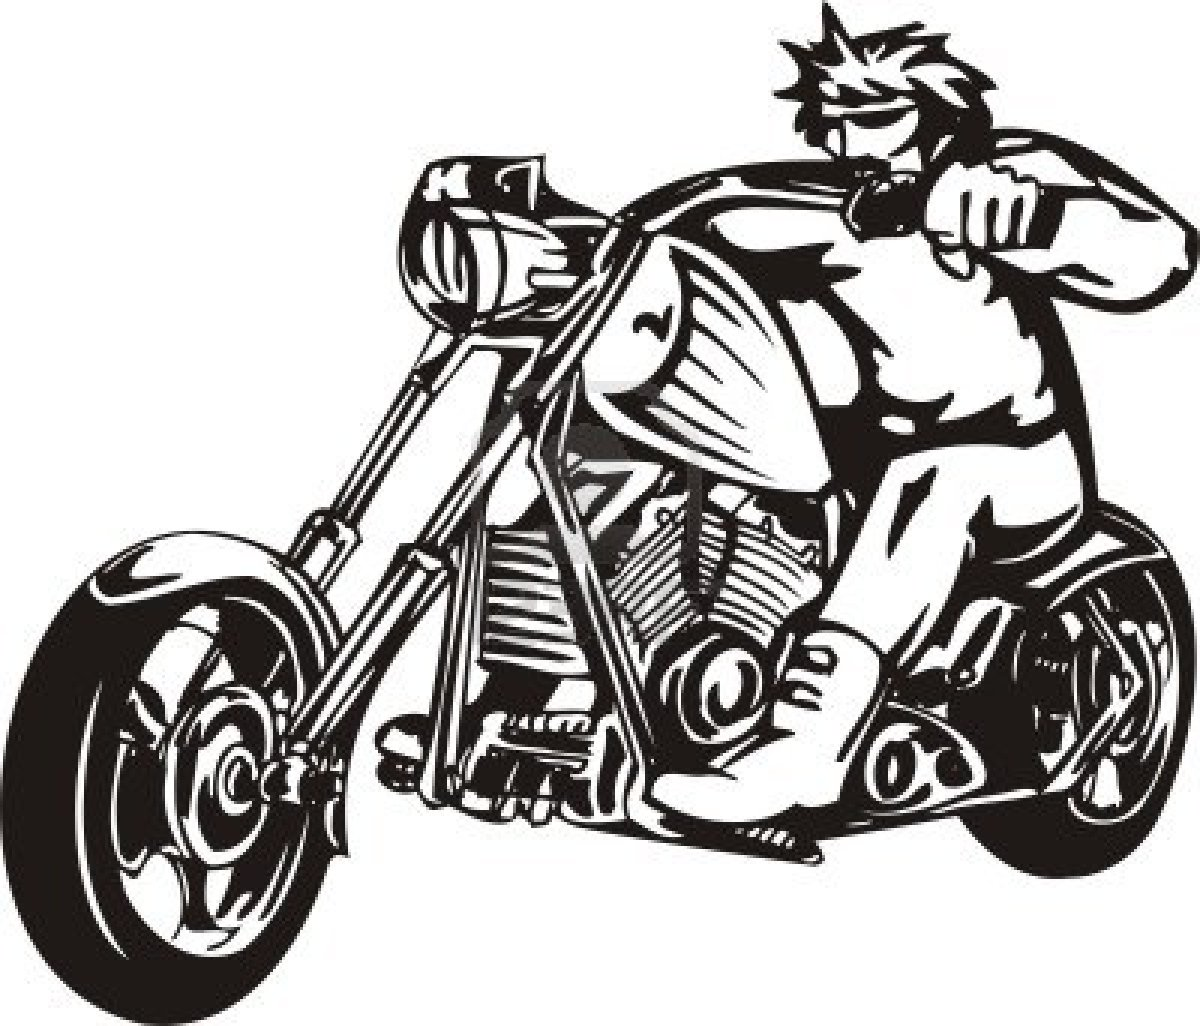 Harley clipart vector library stock Free harley davidson clip art - ClipartFest vector library stock